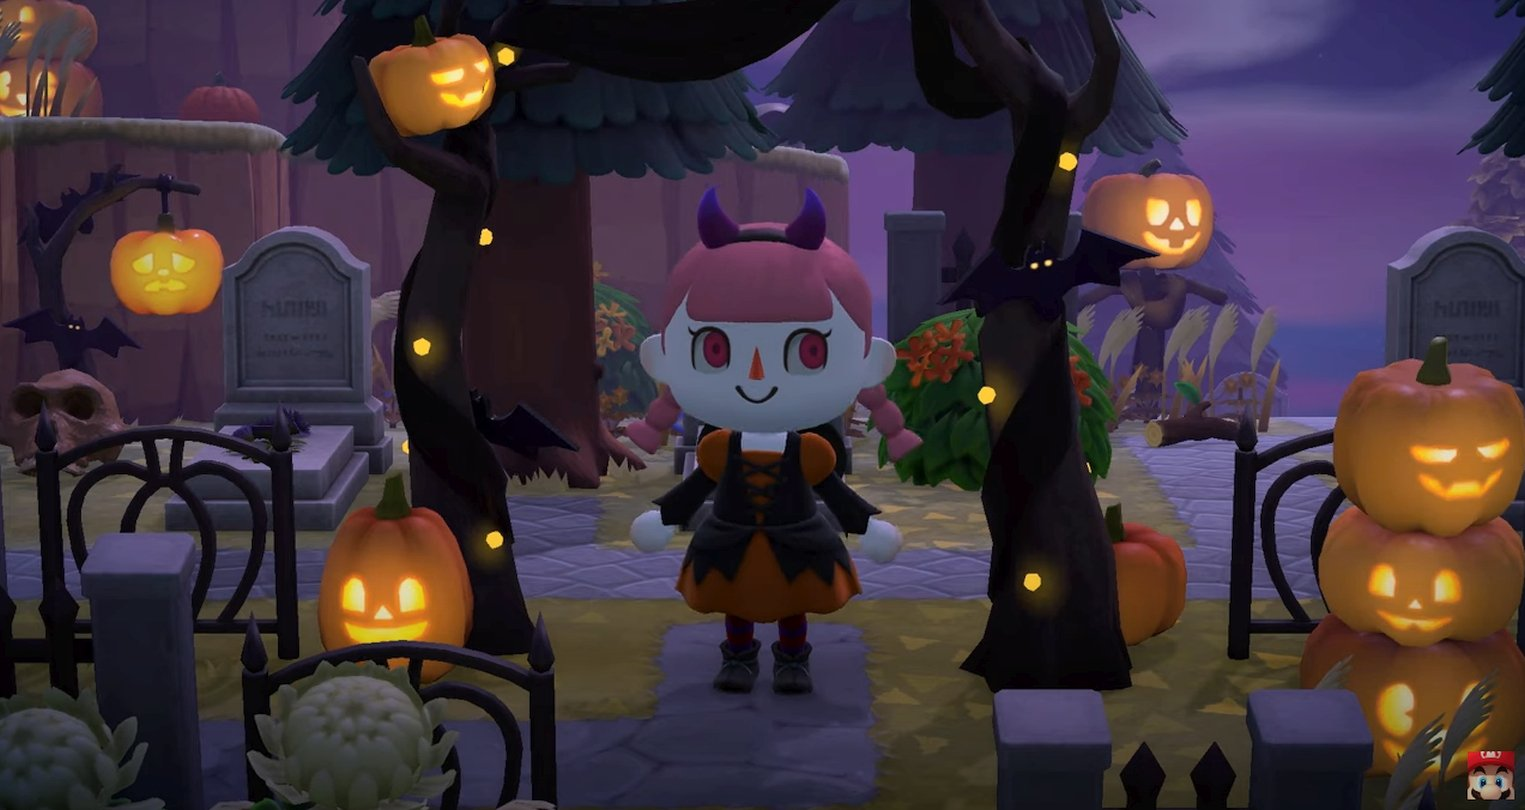 Animal Crossing: New Horizons Reveals Major Upcoming Halloween Update With The Return Of Jack